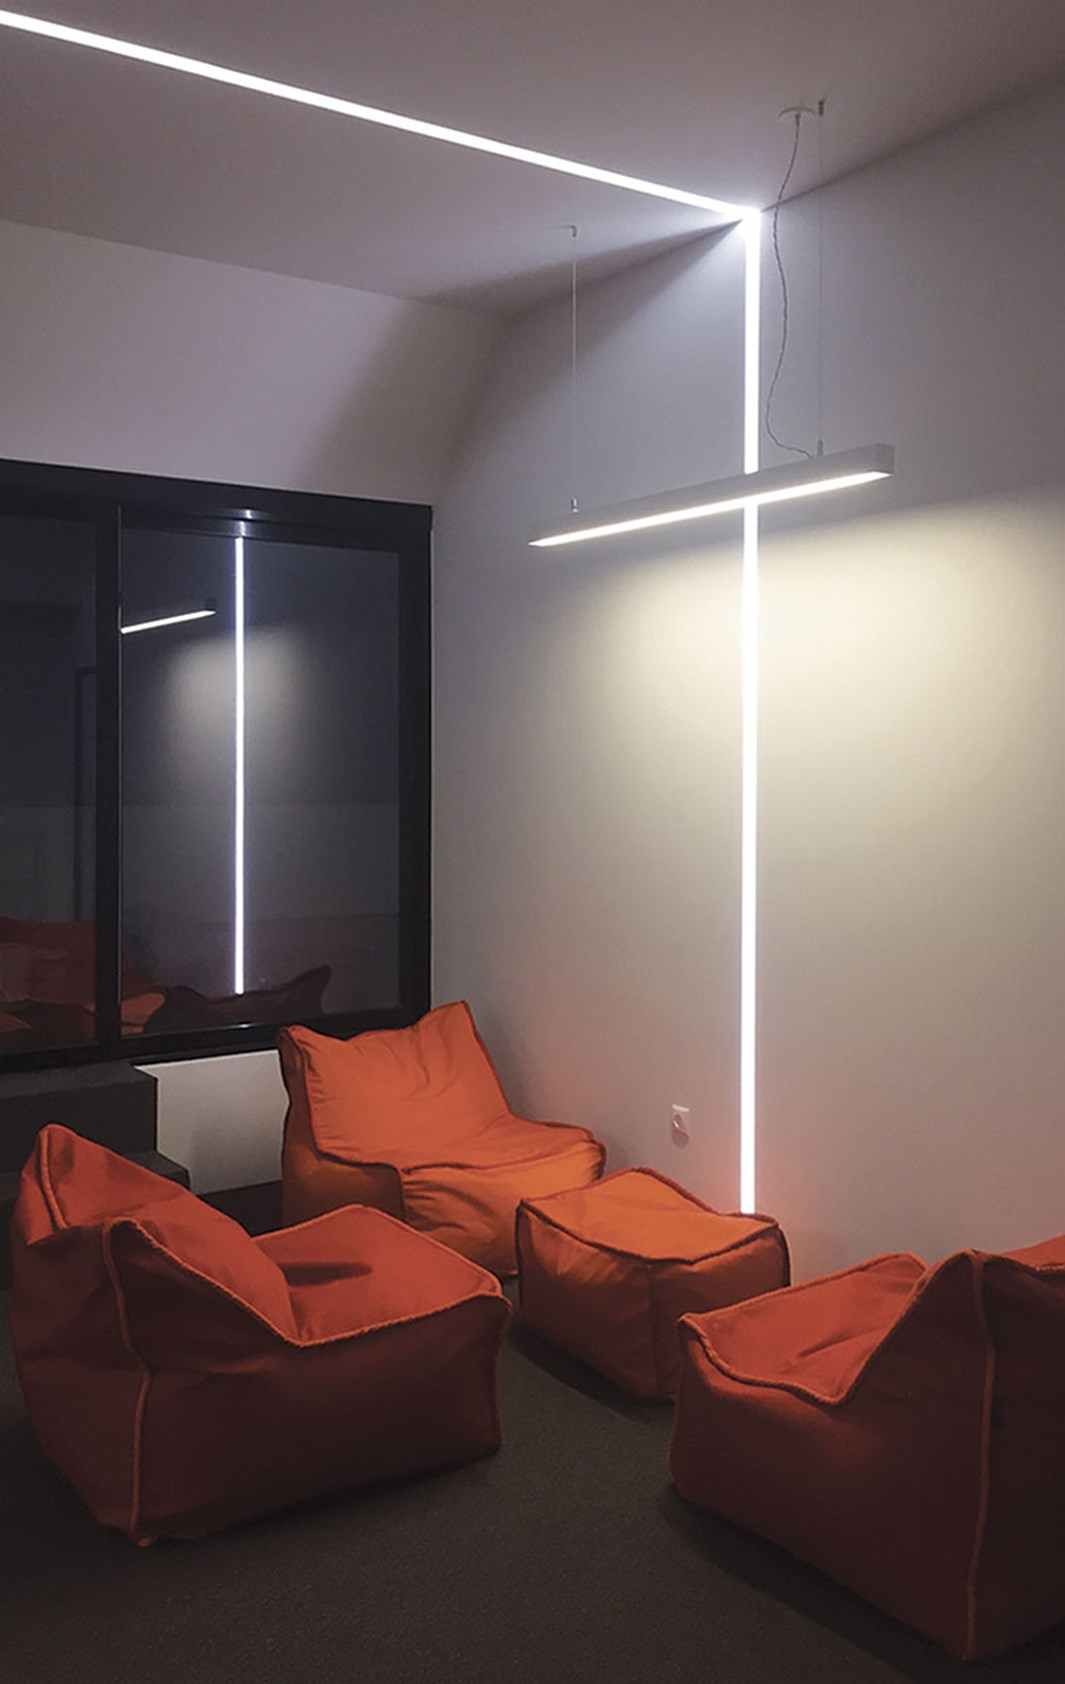 Nama Athina Modular 08 Curve R250 Out Plaster In Linear LED Profile| Image:22